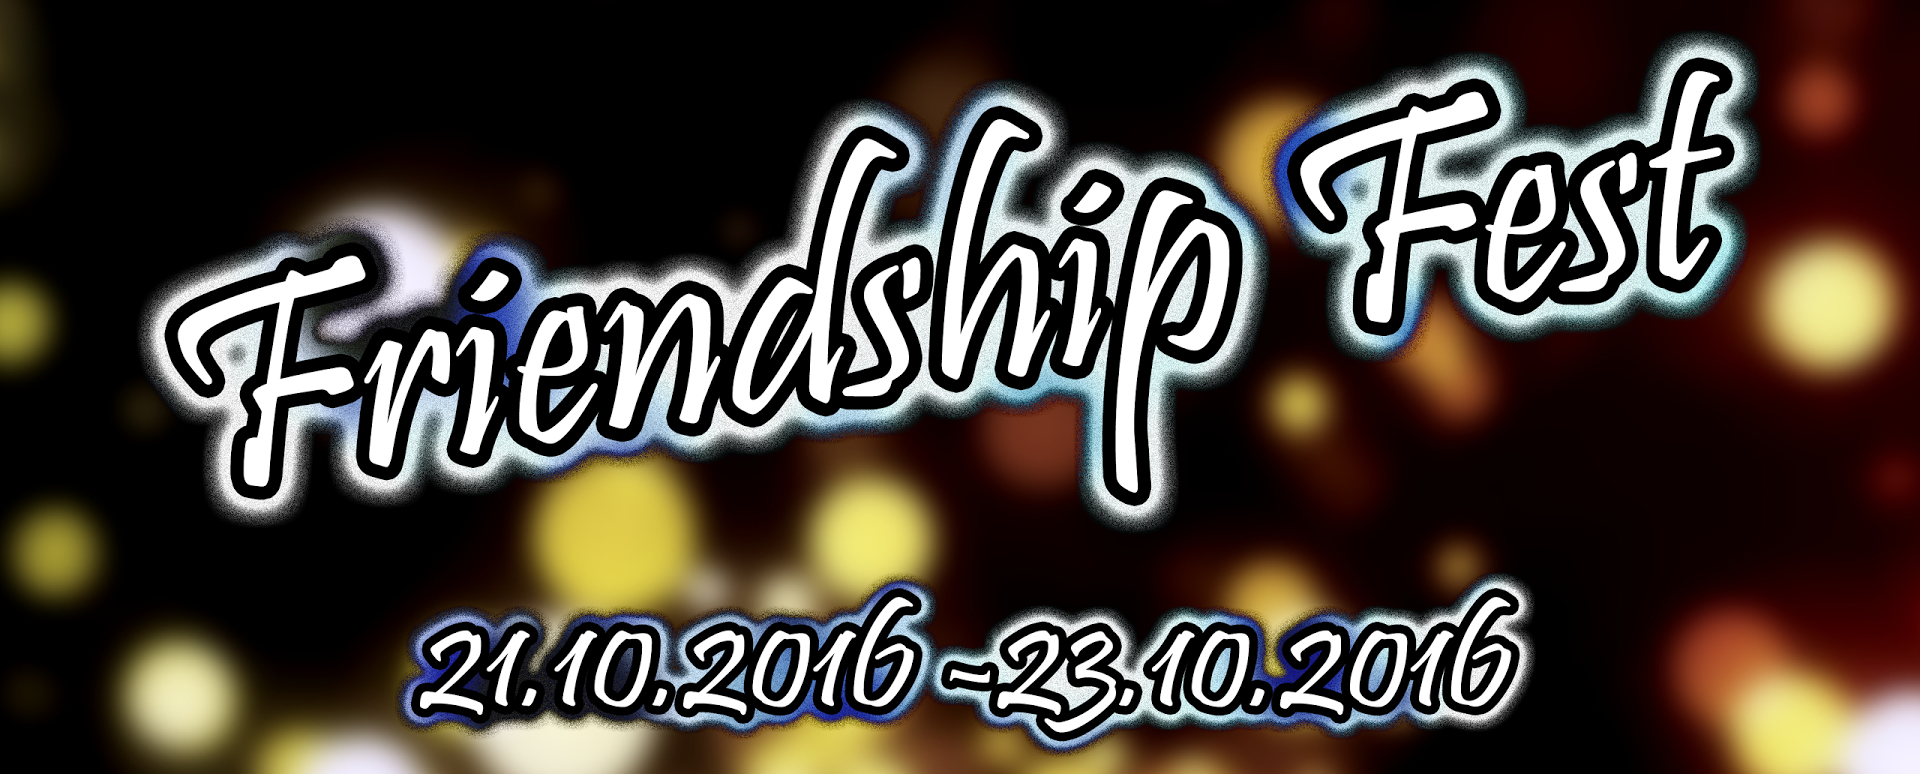 Friendship Fest 2016 - banner